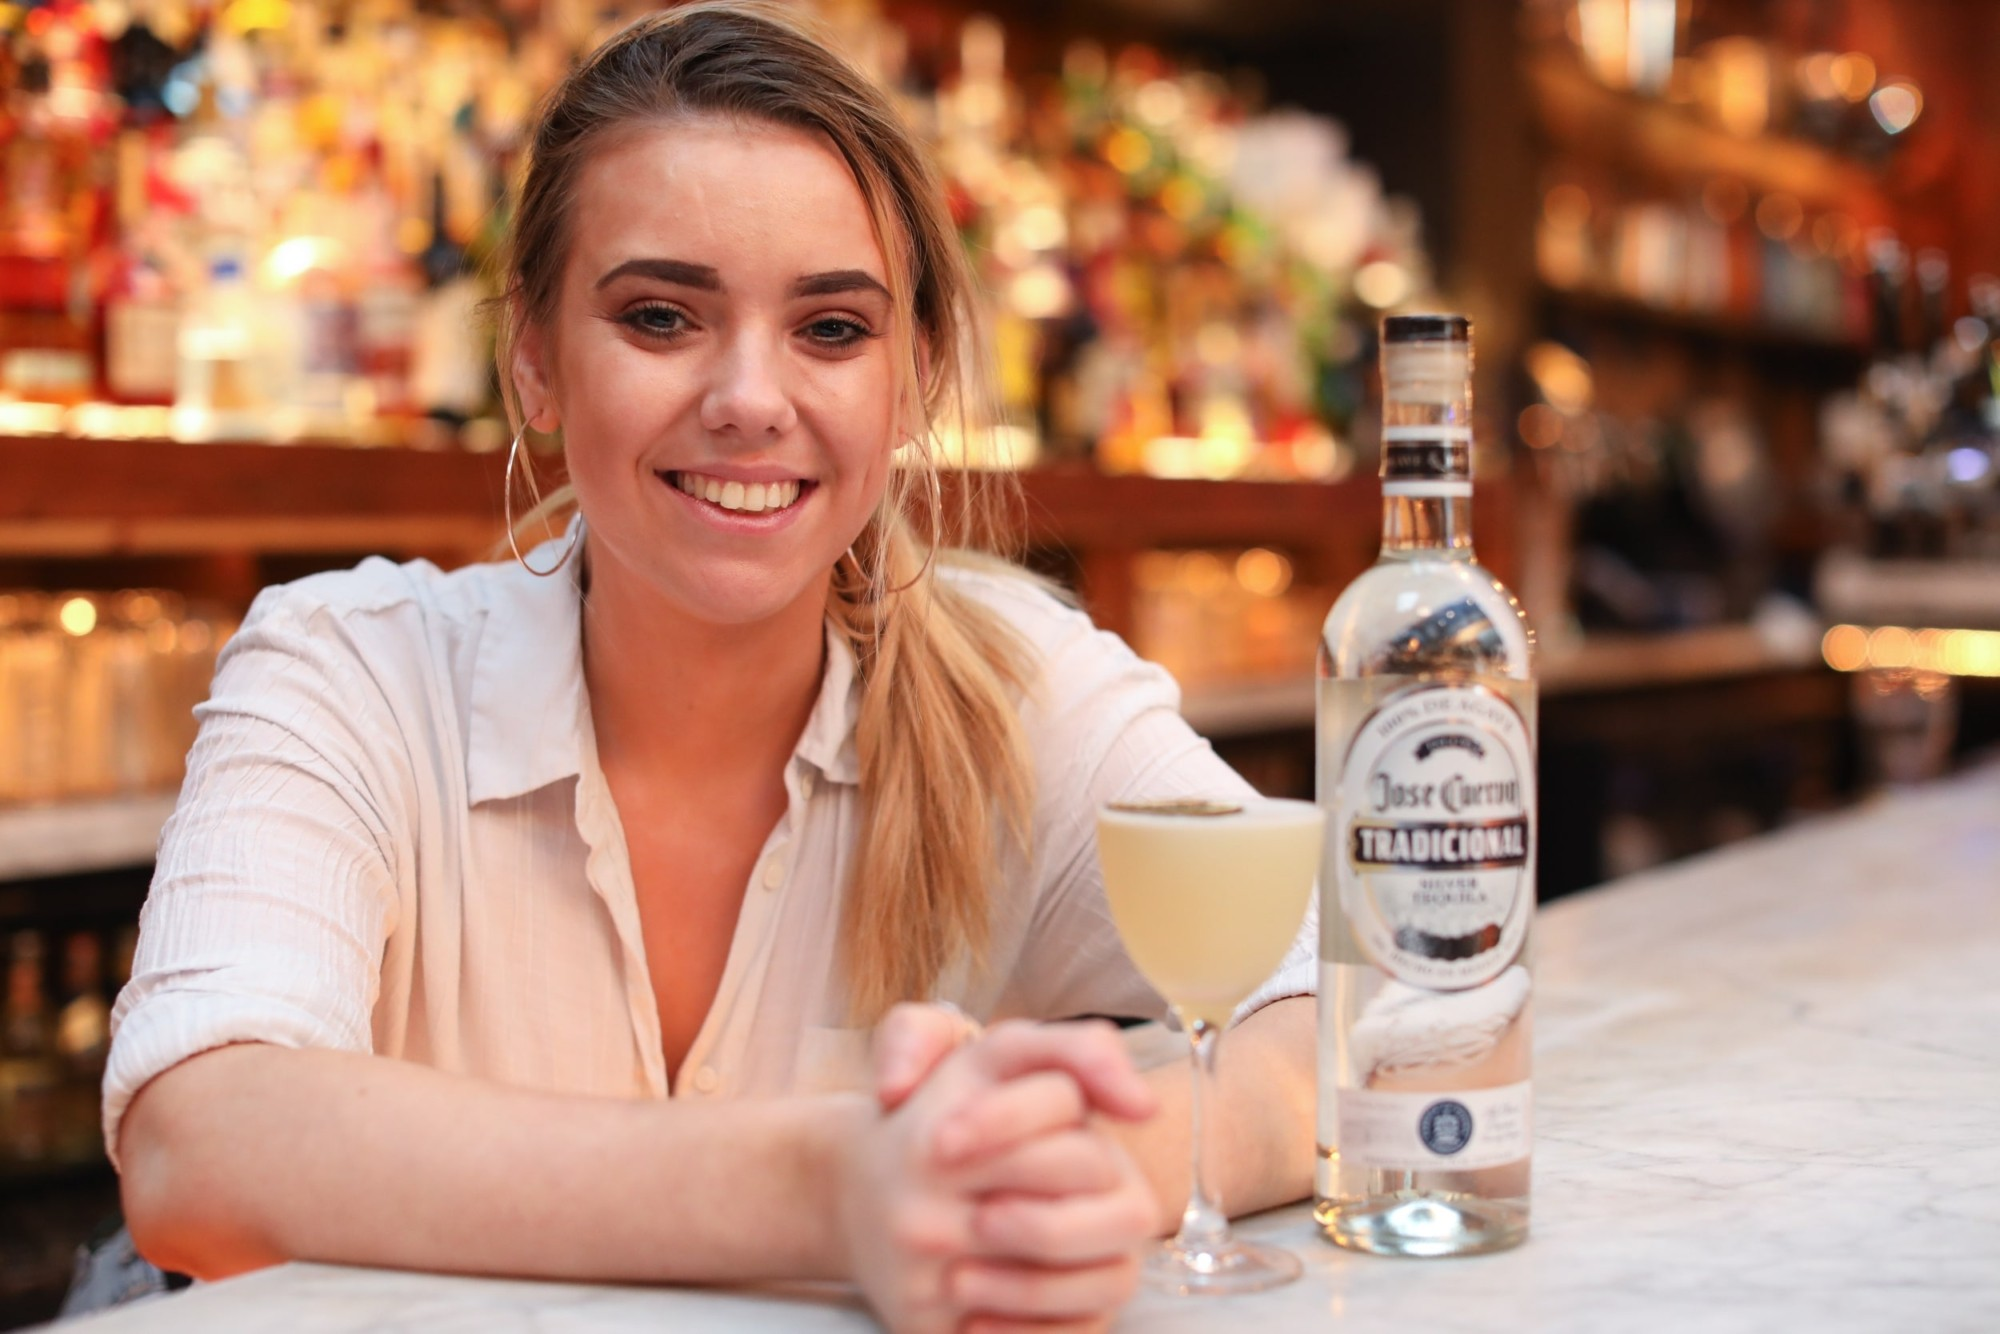 CUERVO TRADICIONAL PRESENTS IRELAND'S BEST MARGARITA COMPETITION